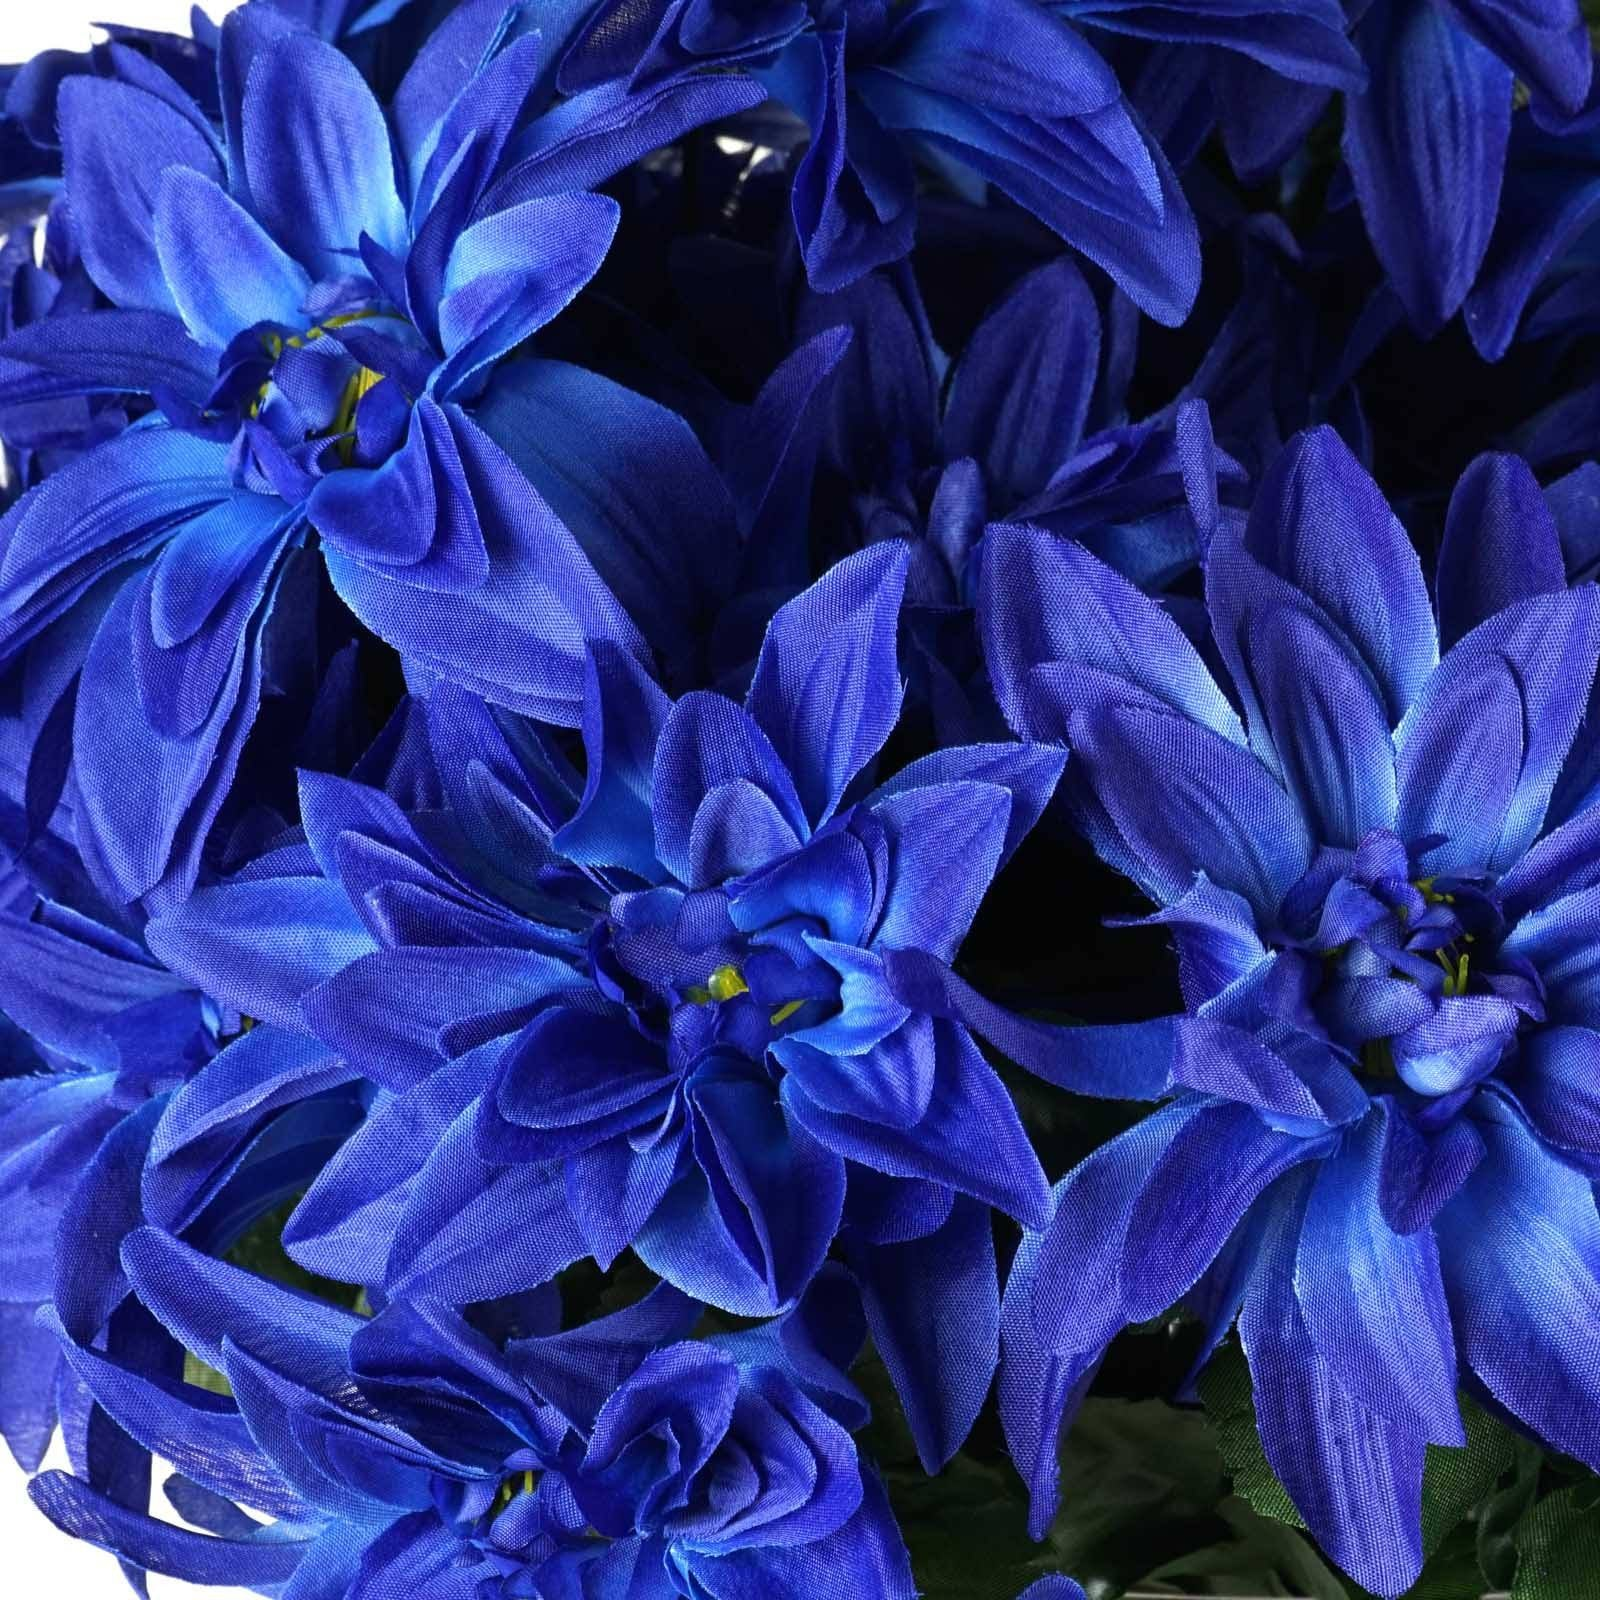 4 Bush 56 Pcs Navy Blue Artificial Silk Dahlia Flower Bushes Wedding